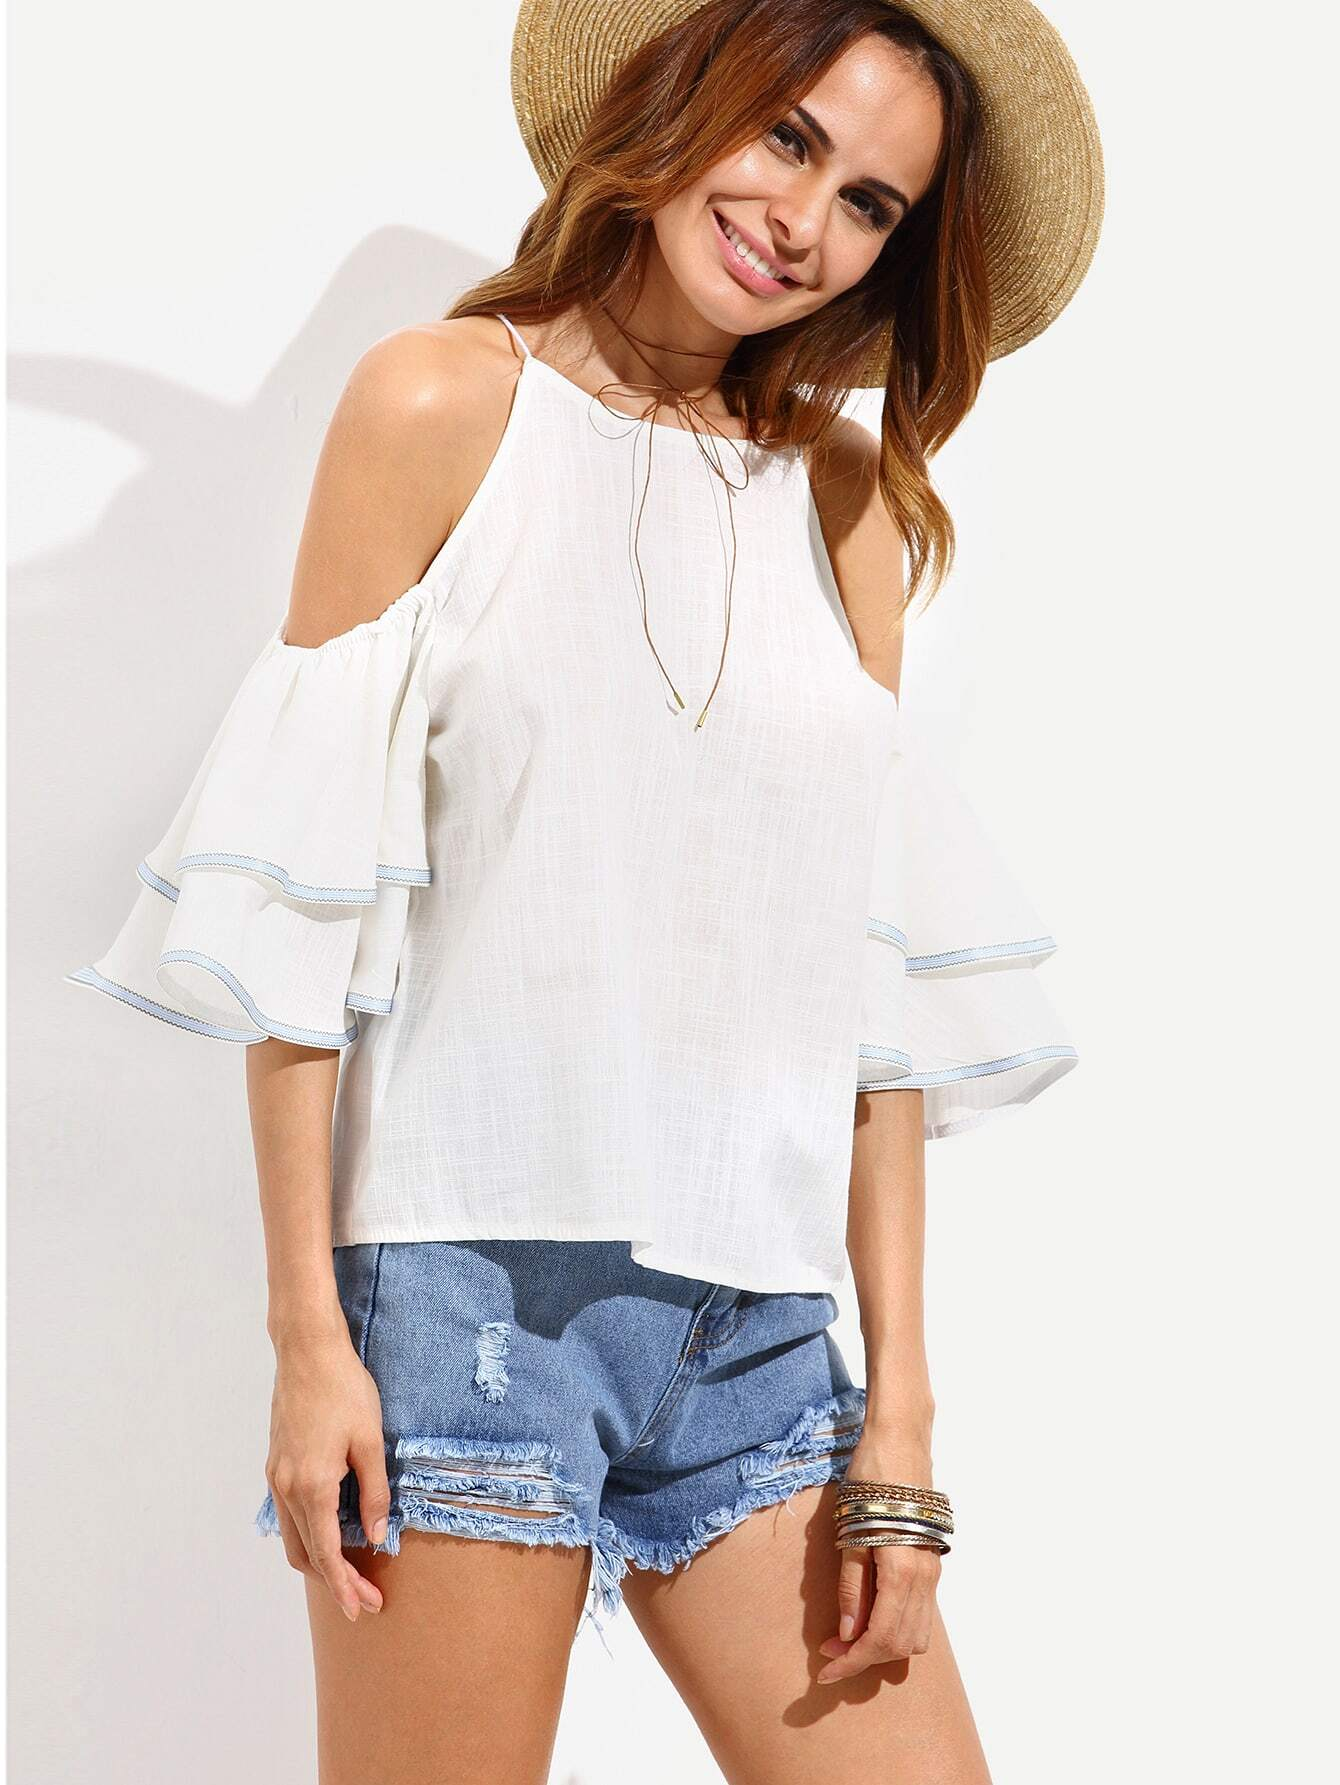 White Cold Shoulder Ruffle Sleeve BlouseWhite Cold Shoulder Ruffle Sleeve Blouse<br><br>color: White<br>size: one-size